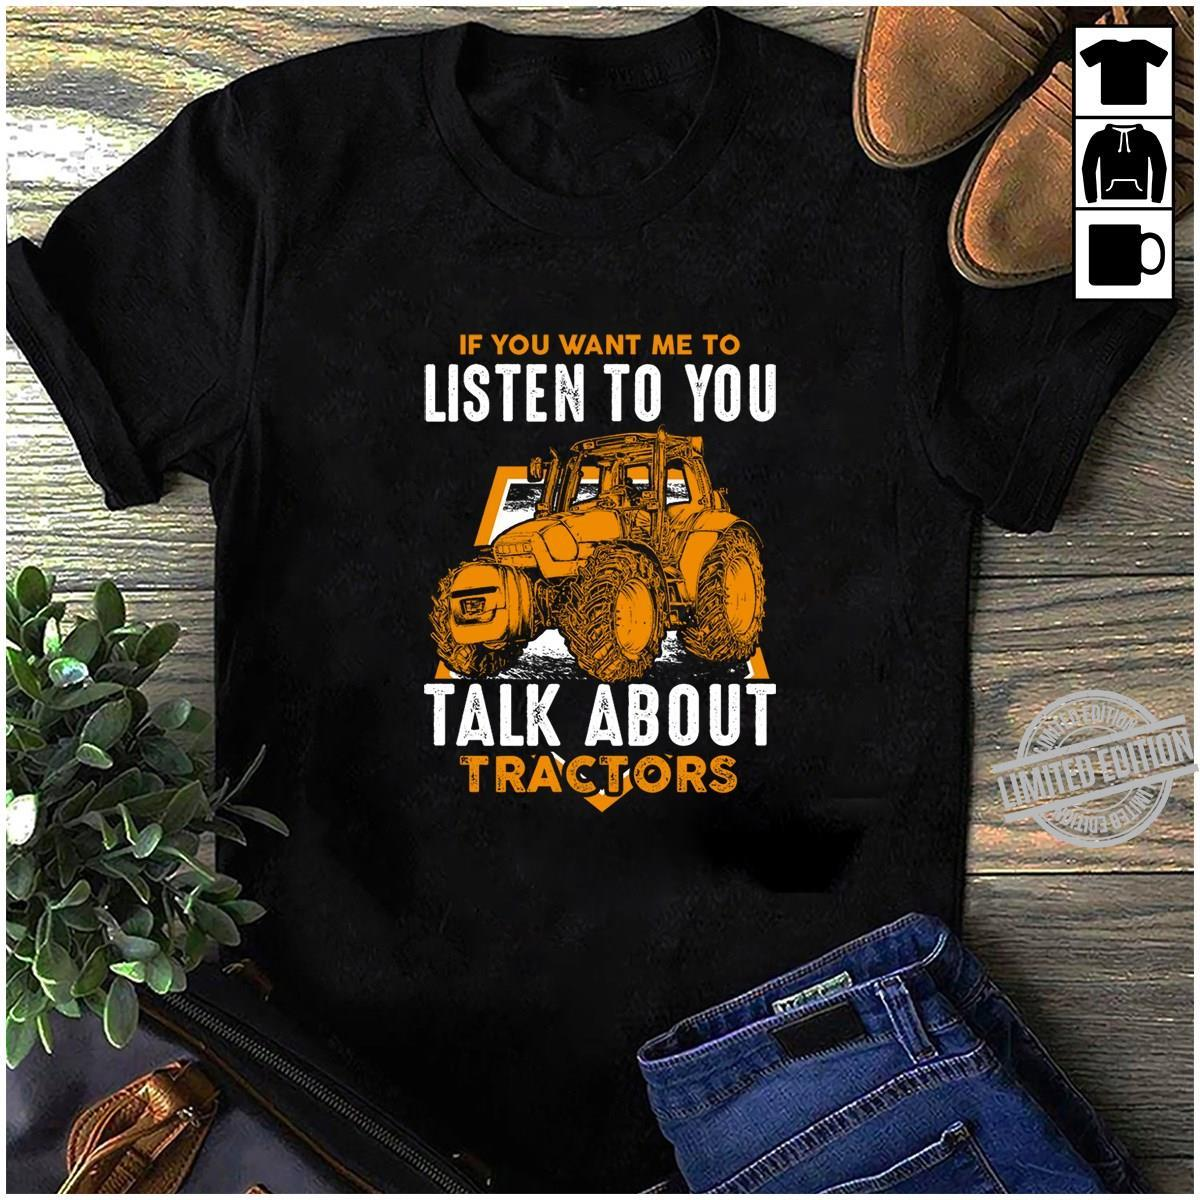 If You Want Me To Listen To You Talk About Tractors Shirt